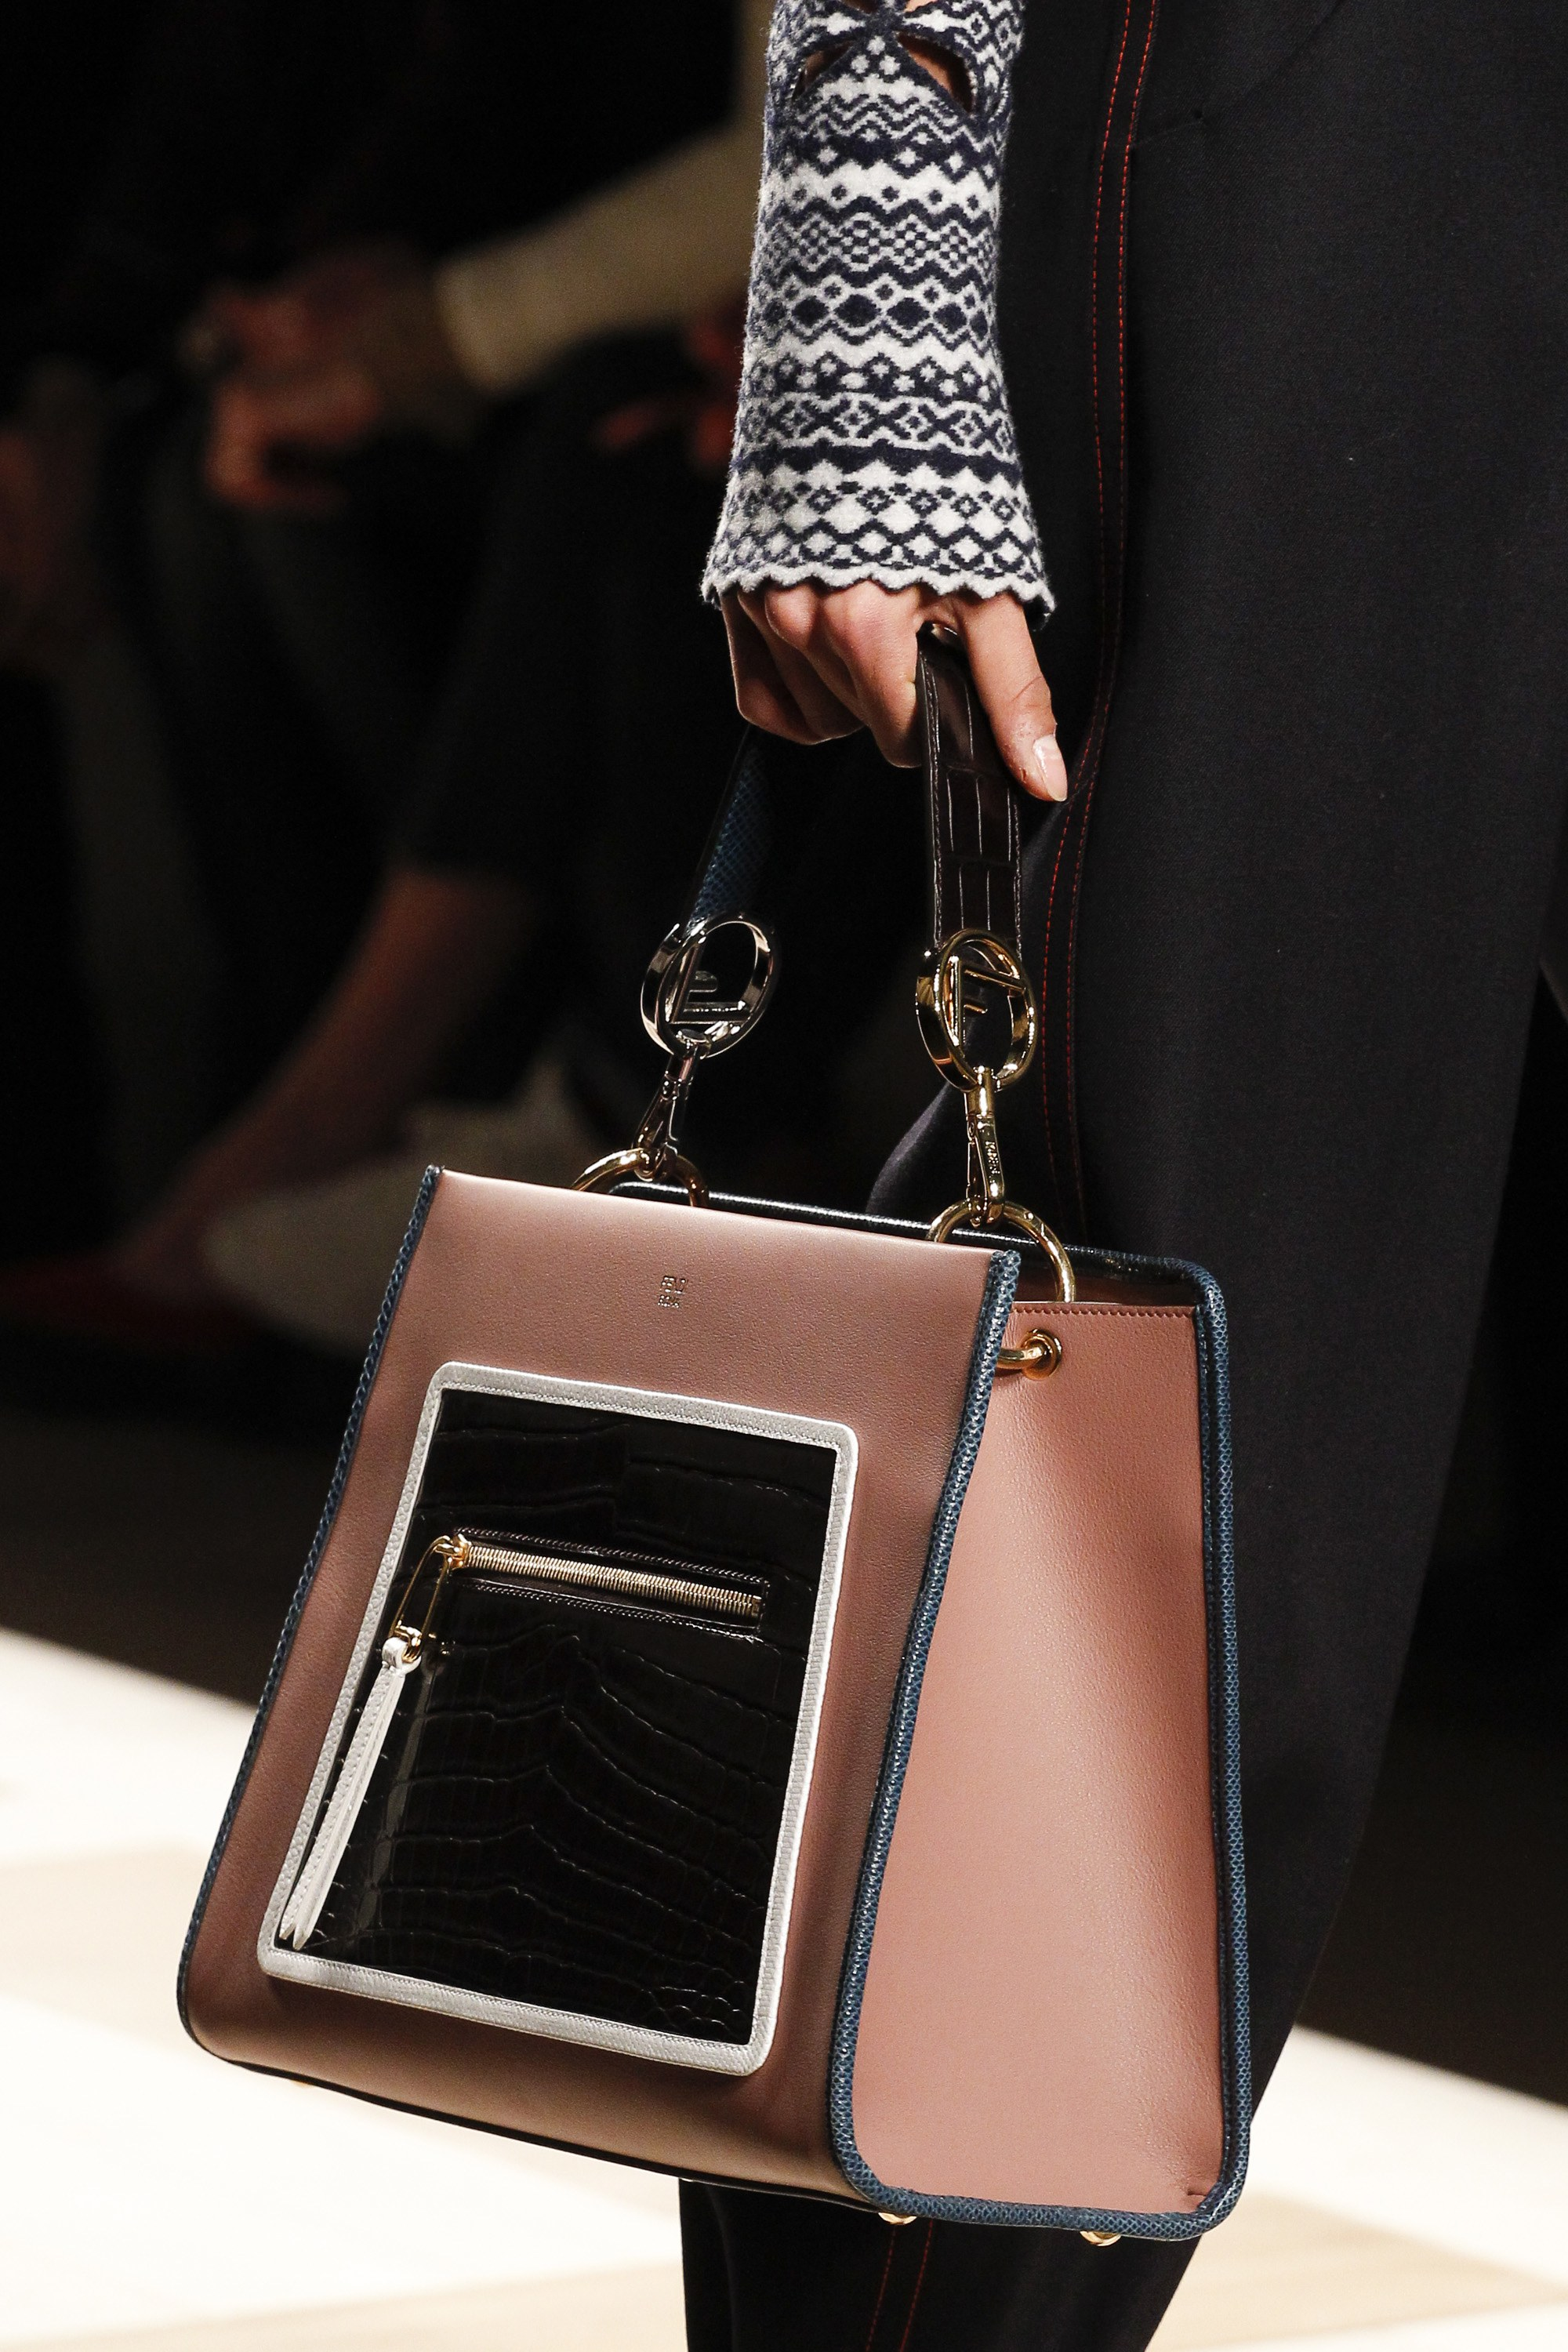 Fendi Fall Winter 2017 Runway Bag Collection Spotted Fashion